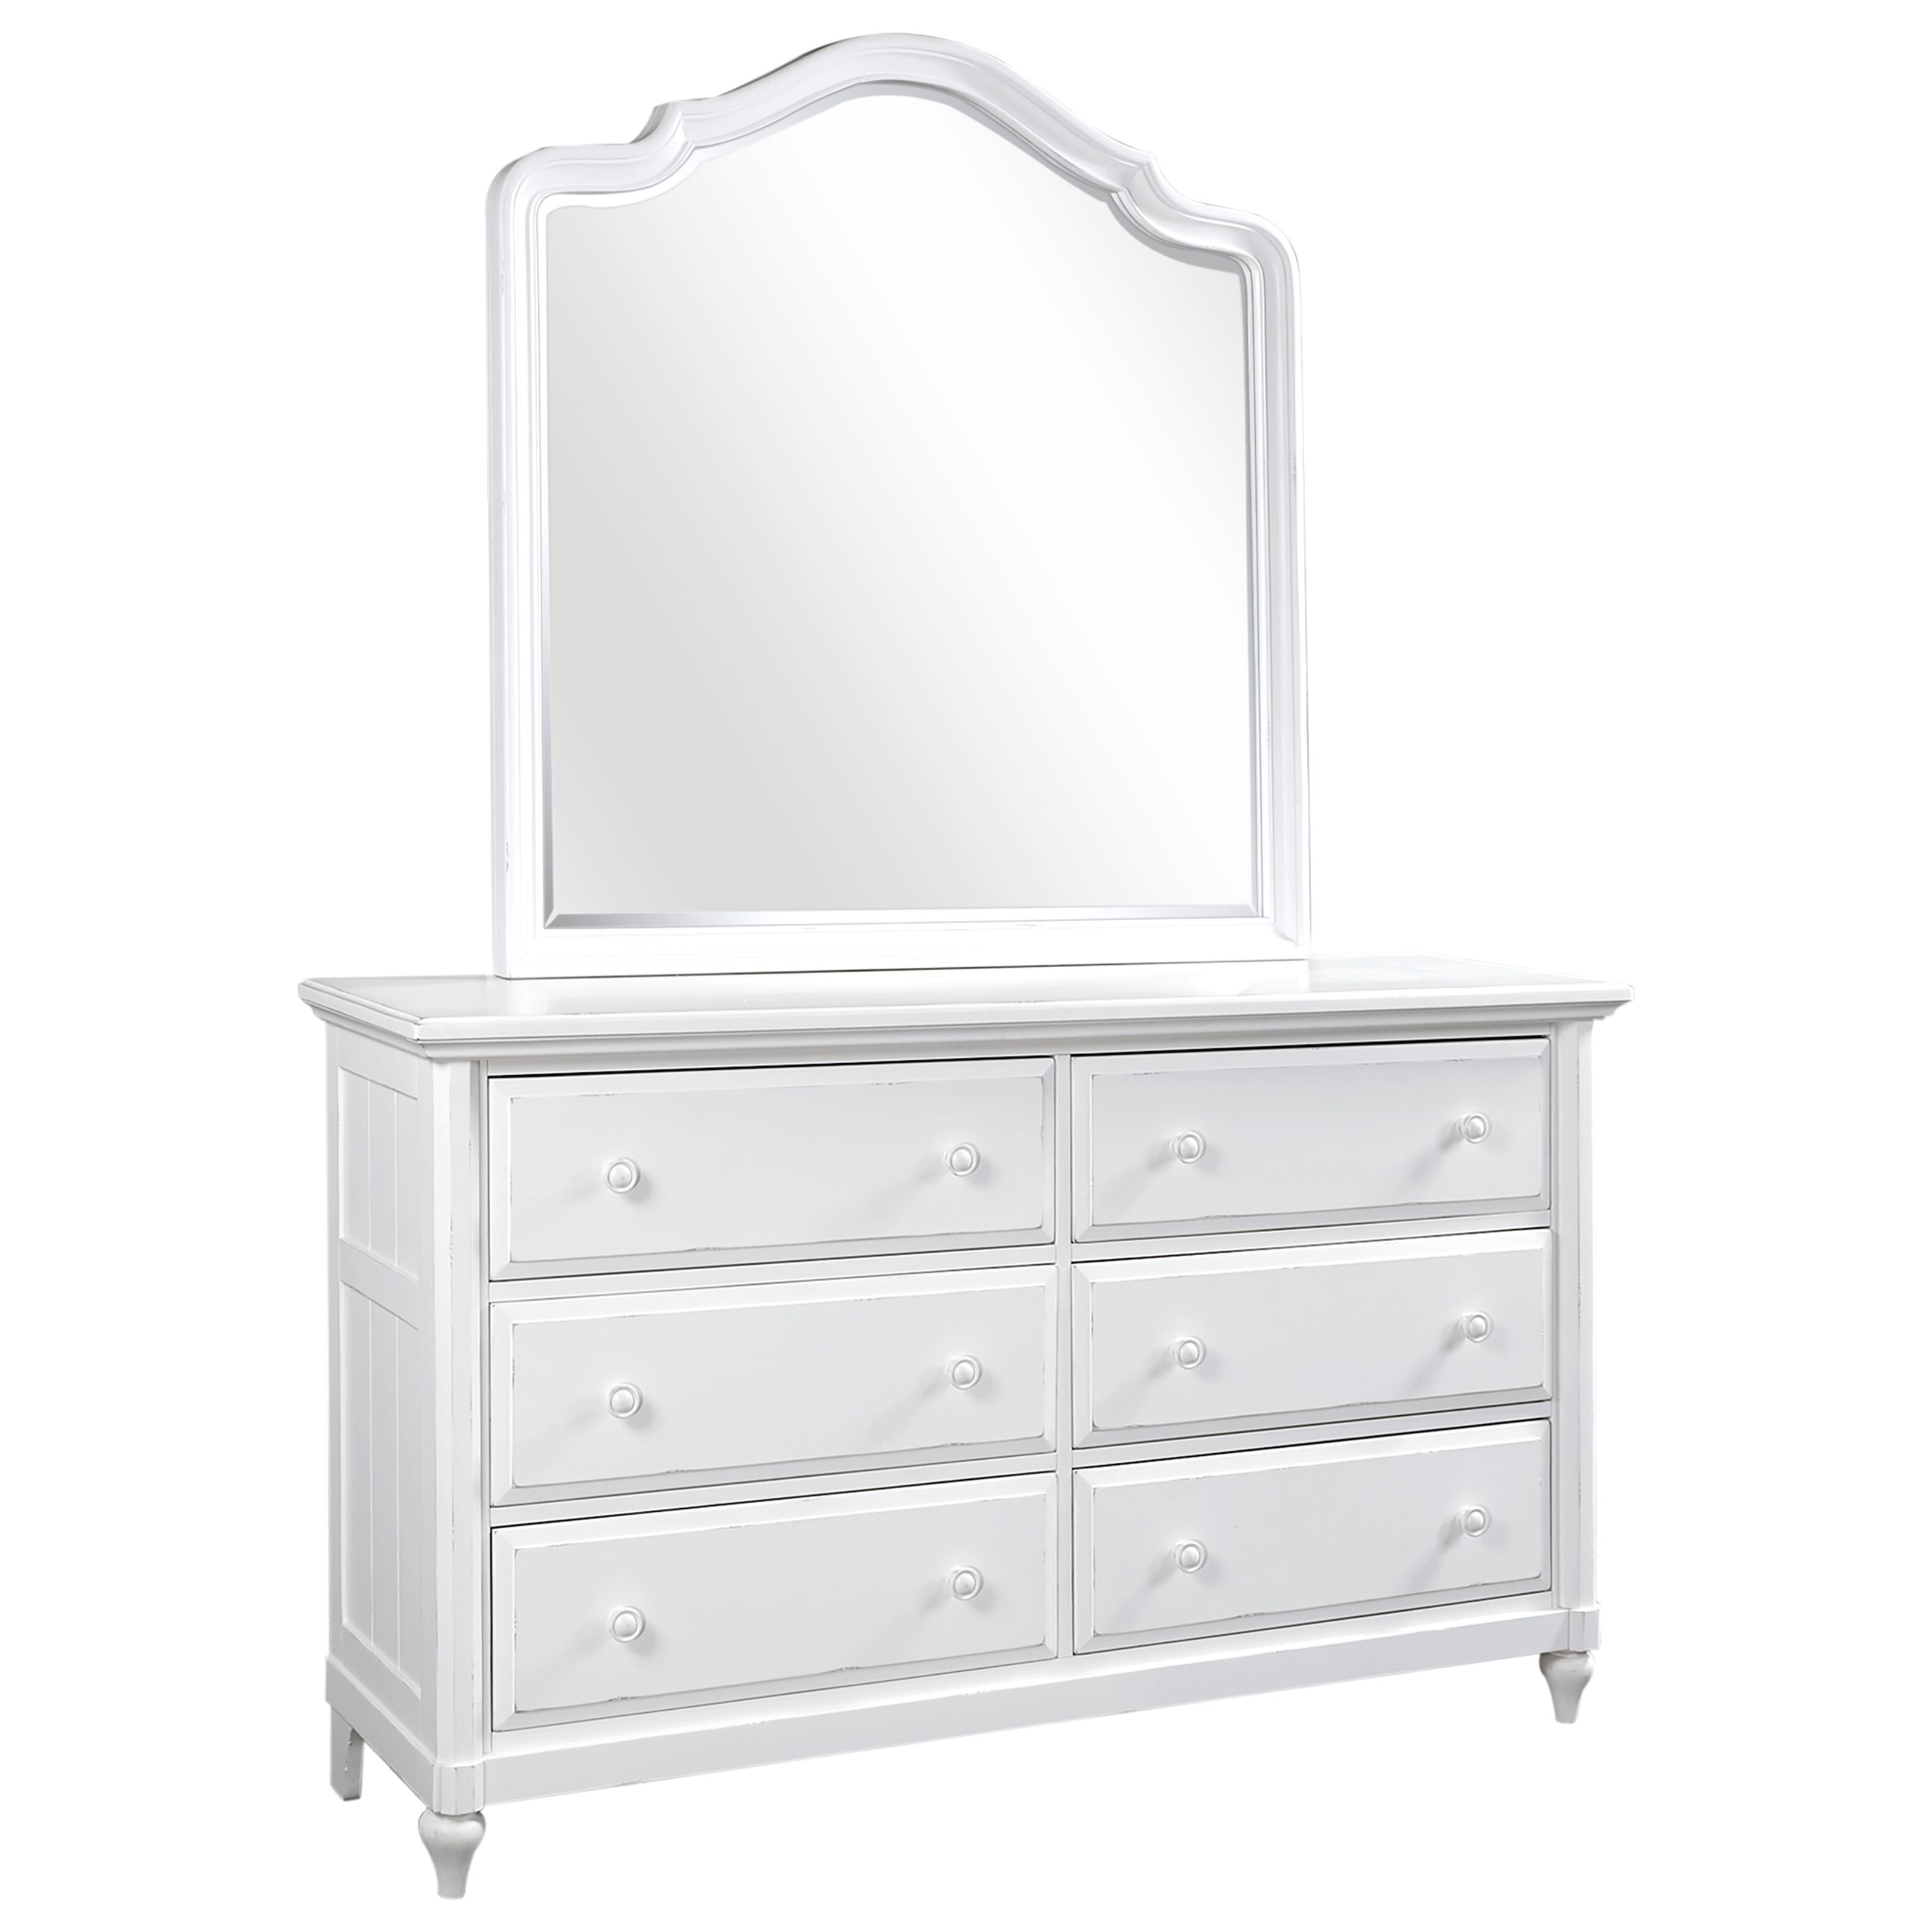 Retreat Dresser and Poster Mirror by Aspenhome at Gill Brothers Furniture